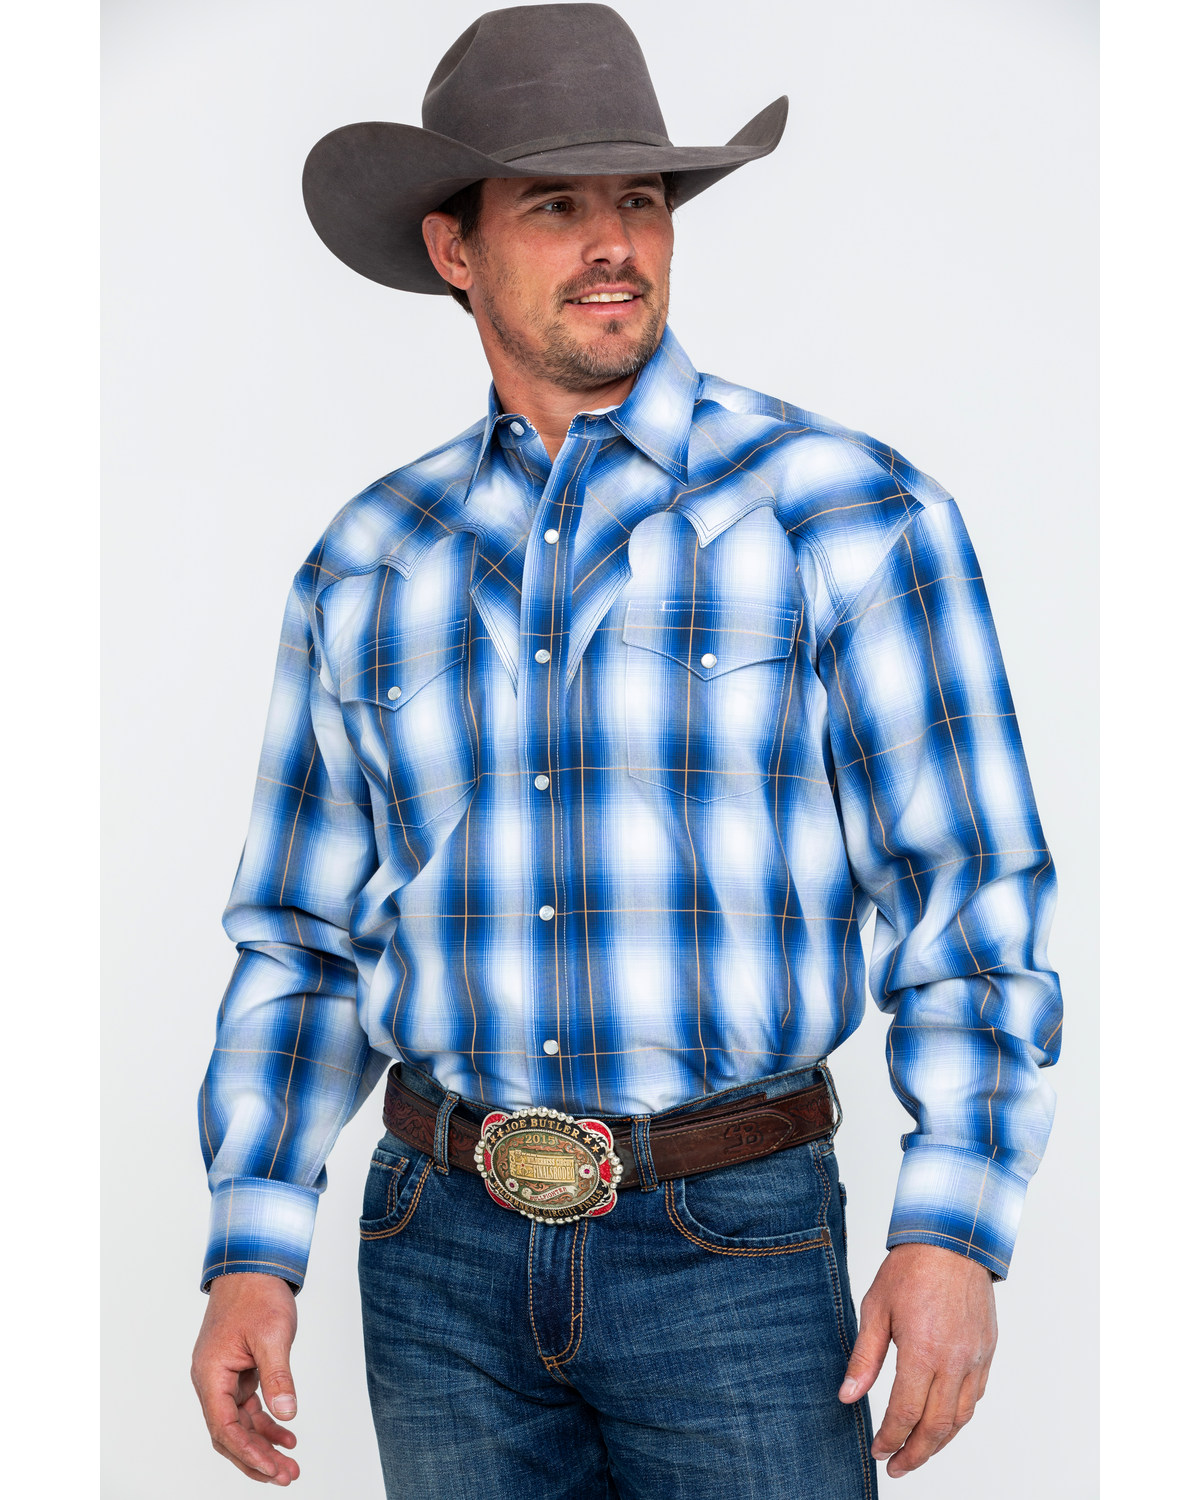 414985cd785bb Stetson Men s Blue Large Plaid Long Sleeve Western Shirt